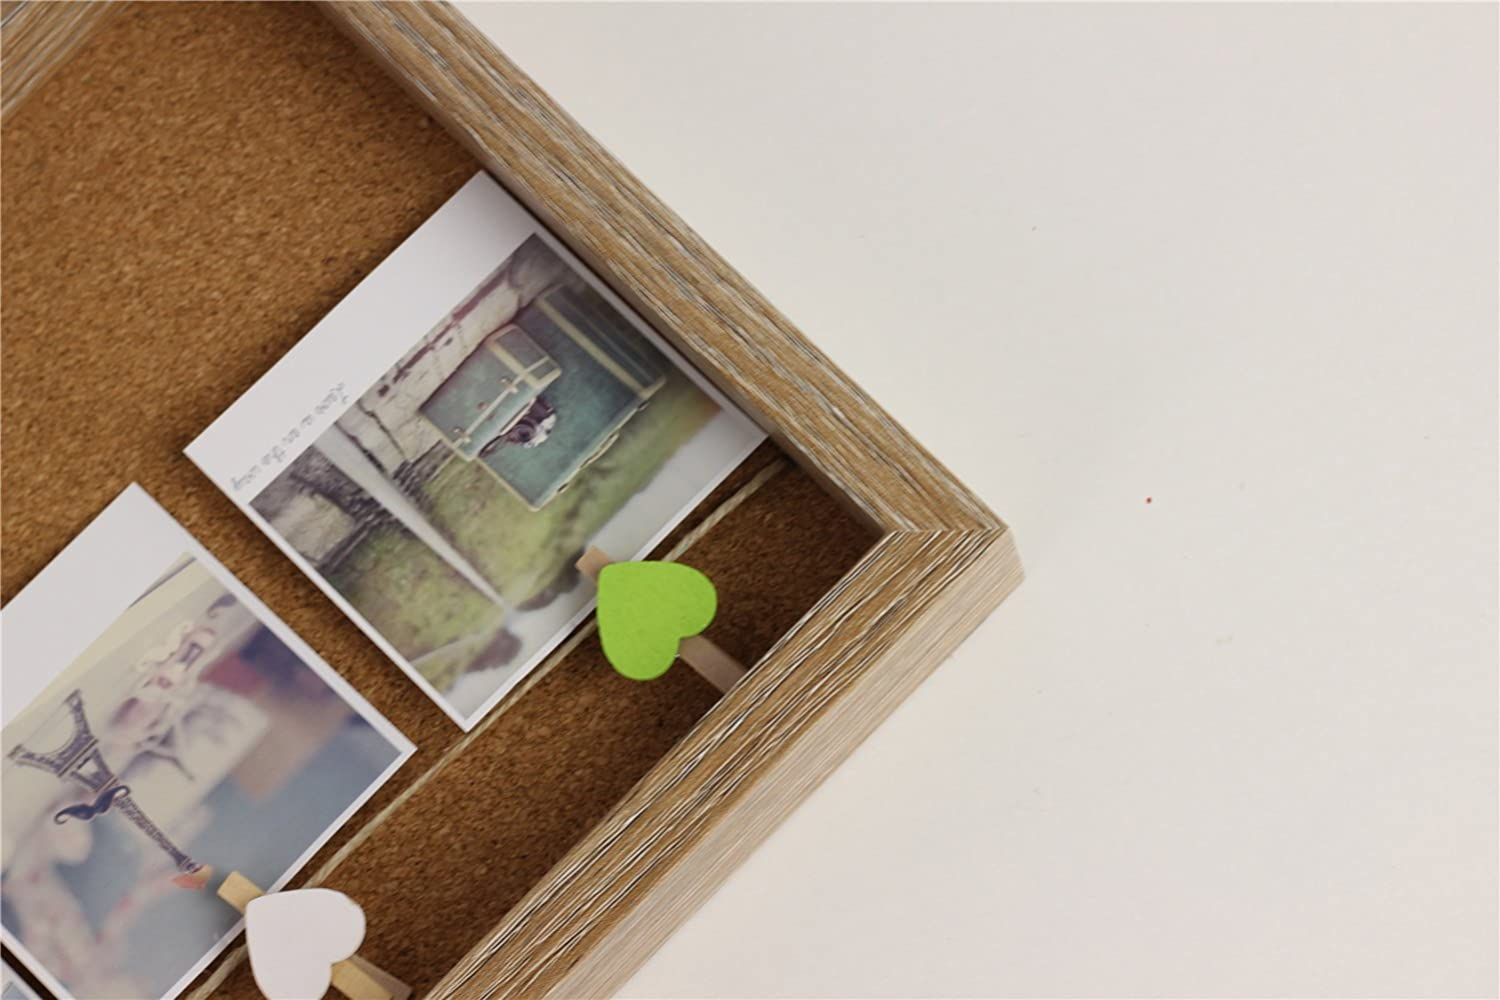 Home/&Me Wood Picture Photo Frame 4 by 6 Inches